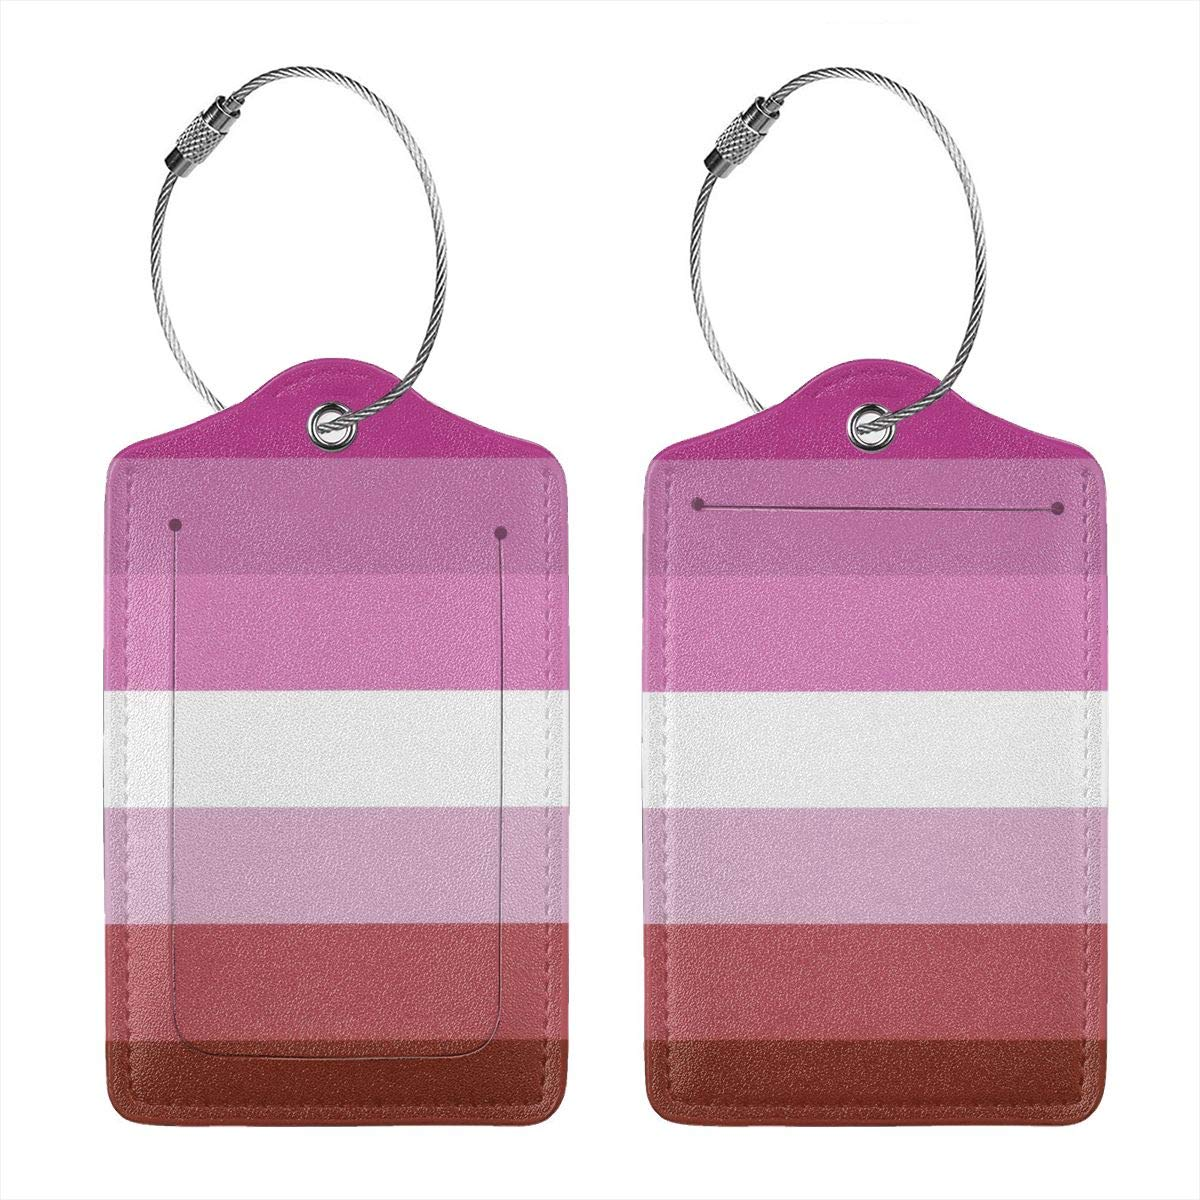 Lesbian Pride Flag Luggage Tag Label Travel Bag Label With Privacy Cover Luggage Tag Leather Personalized Suitcase Tag Travel Accessories